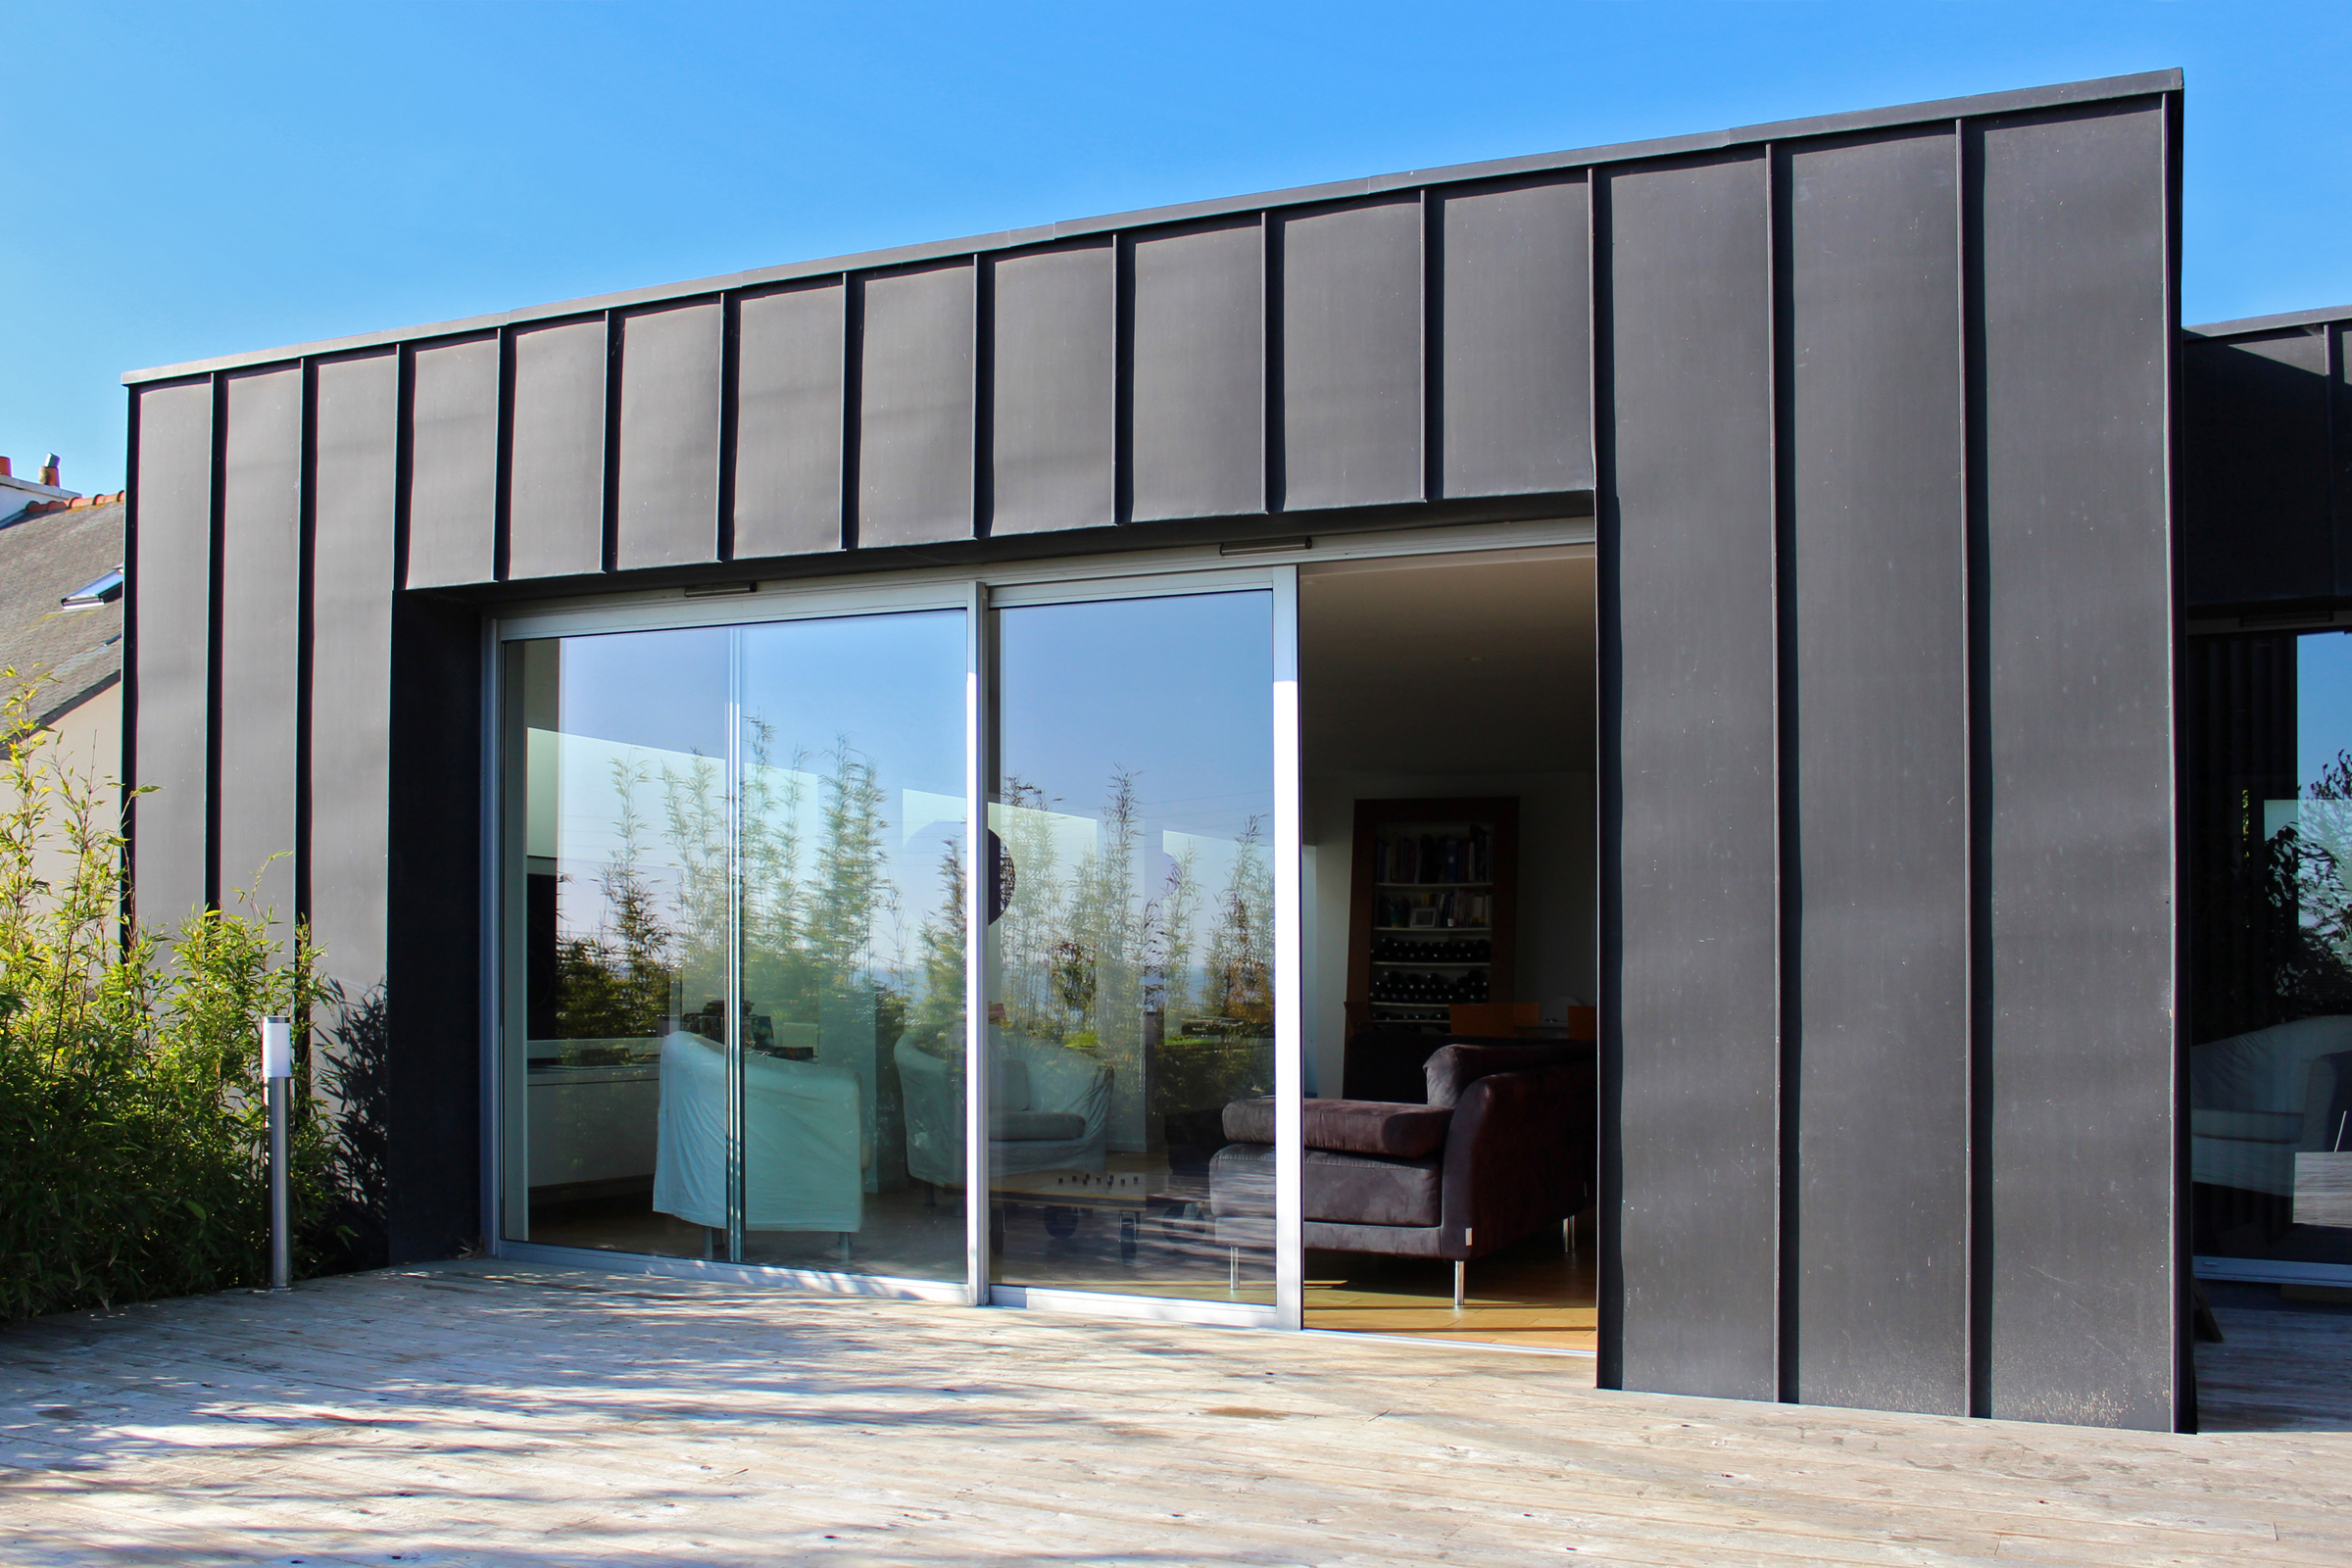 Extension maison metallique cool with extension maison for Extension maison ossature metallique